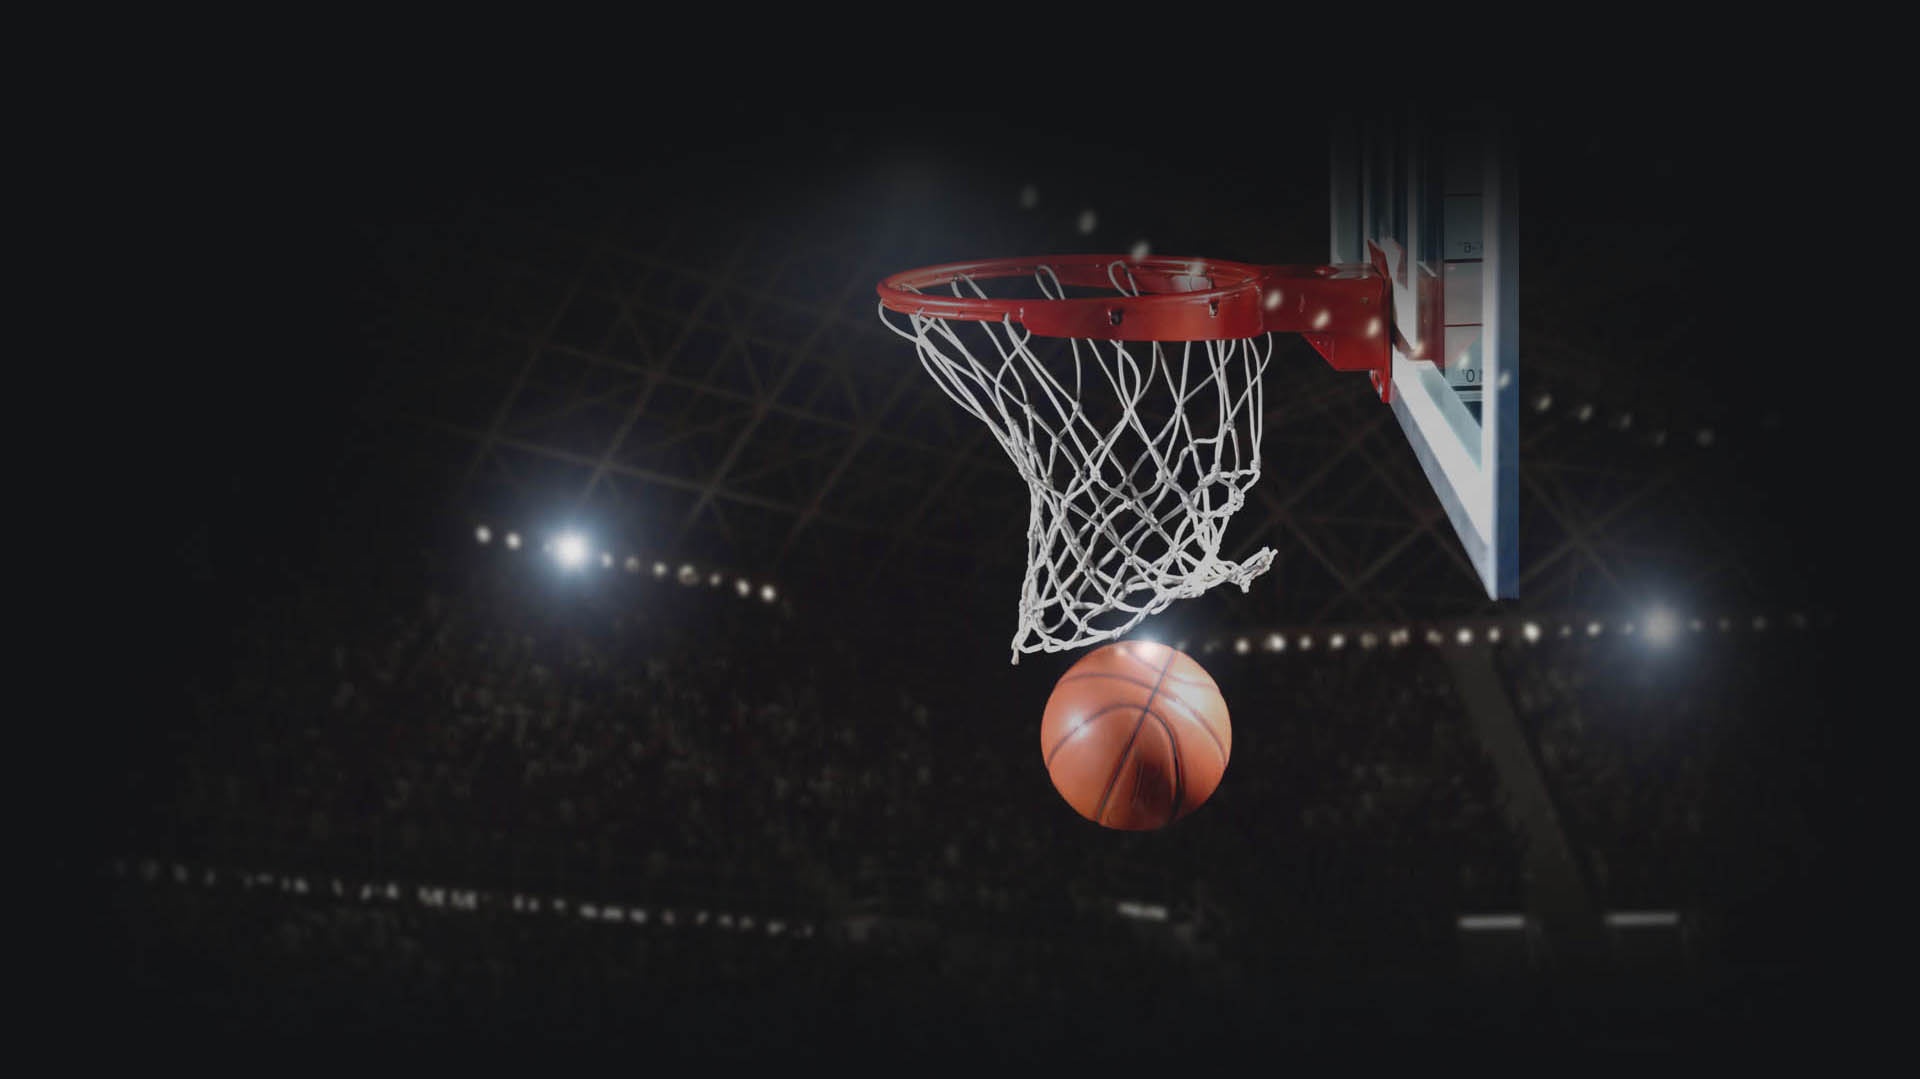 basketball camp proposal 2015, 2016 & 2017 florida high school basketball state championship events site proposal outline and specifications for prospective host organizations.